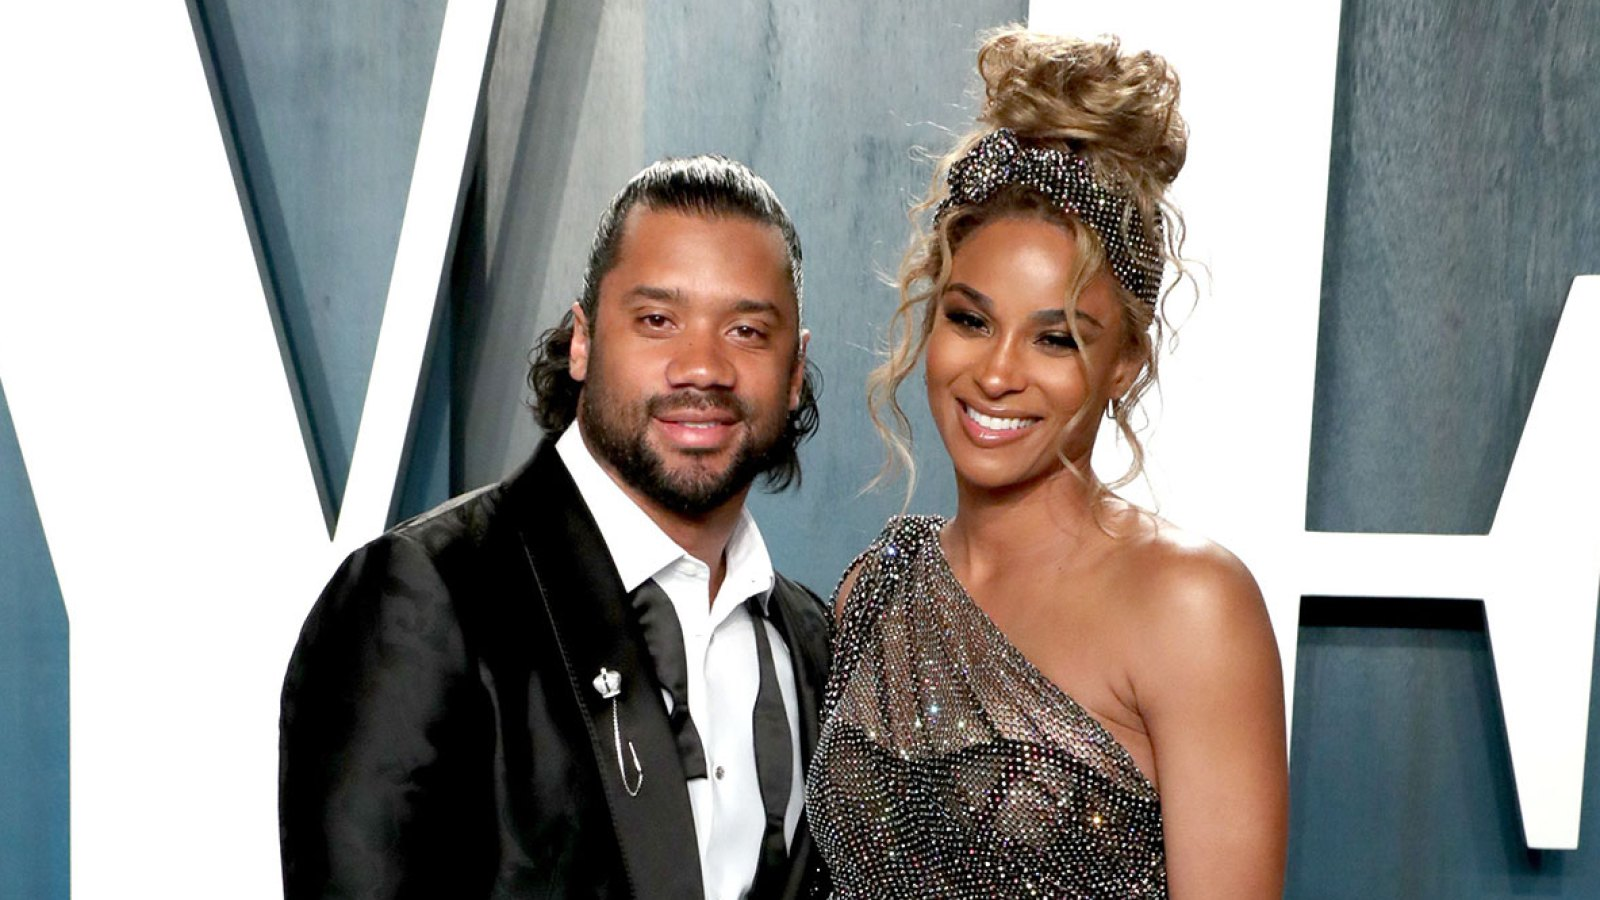 Pregnant Ciara And Russell Wilson Post 1st Tiktok Video With Kids